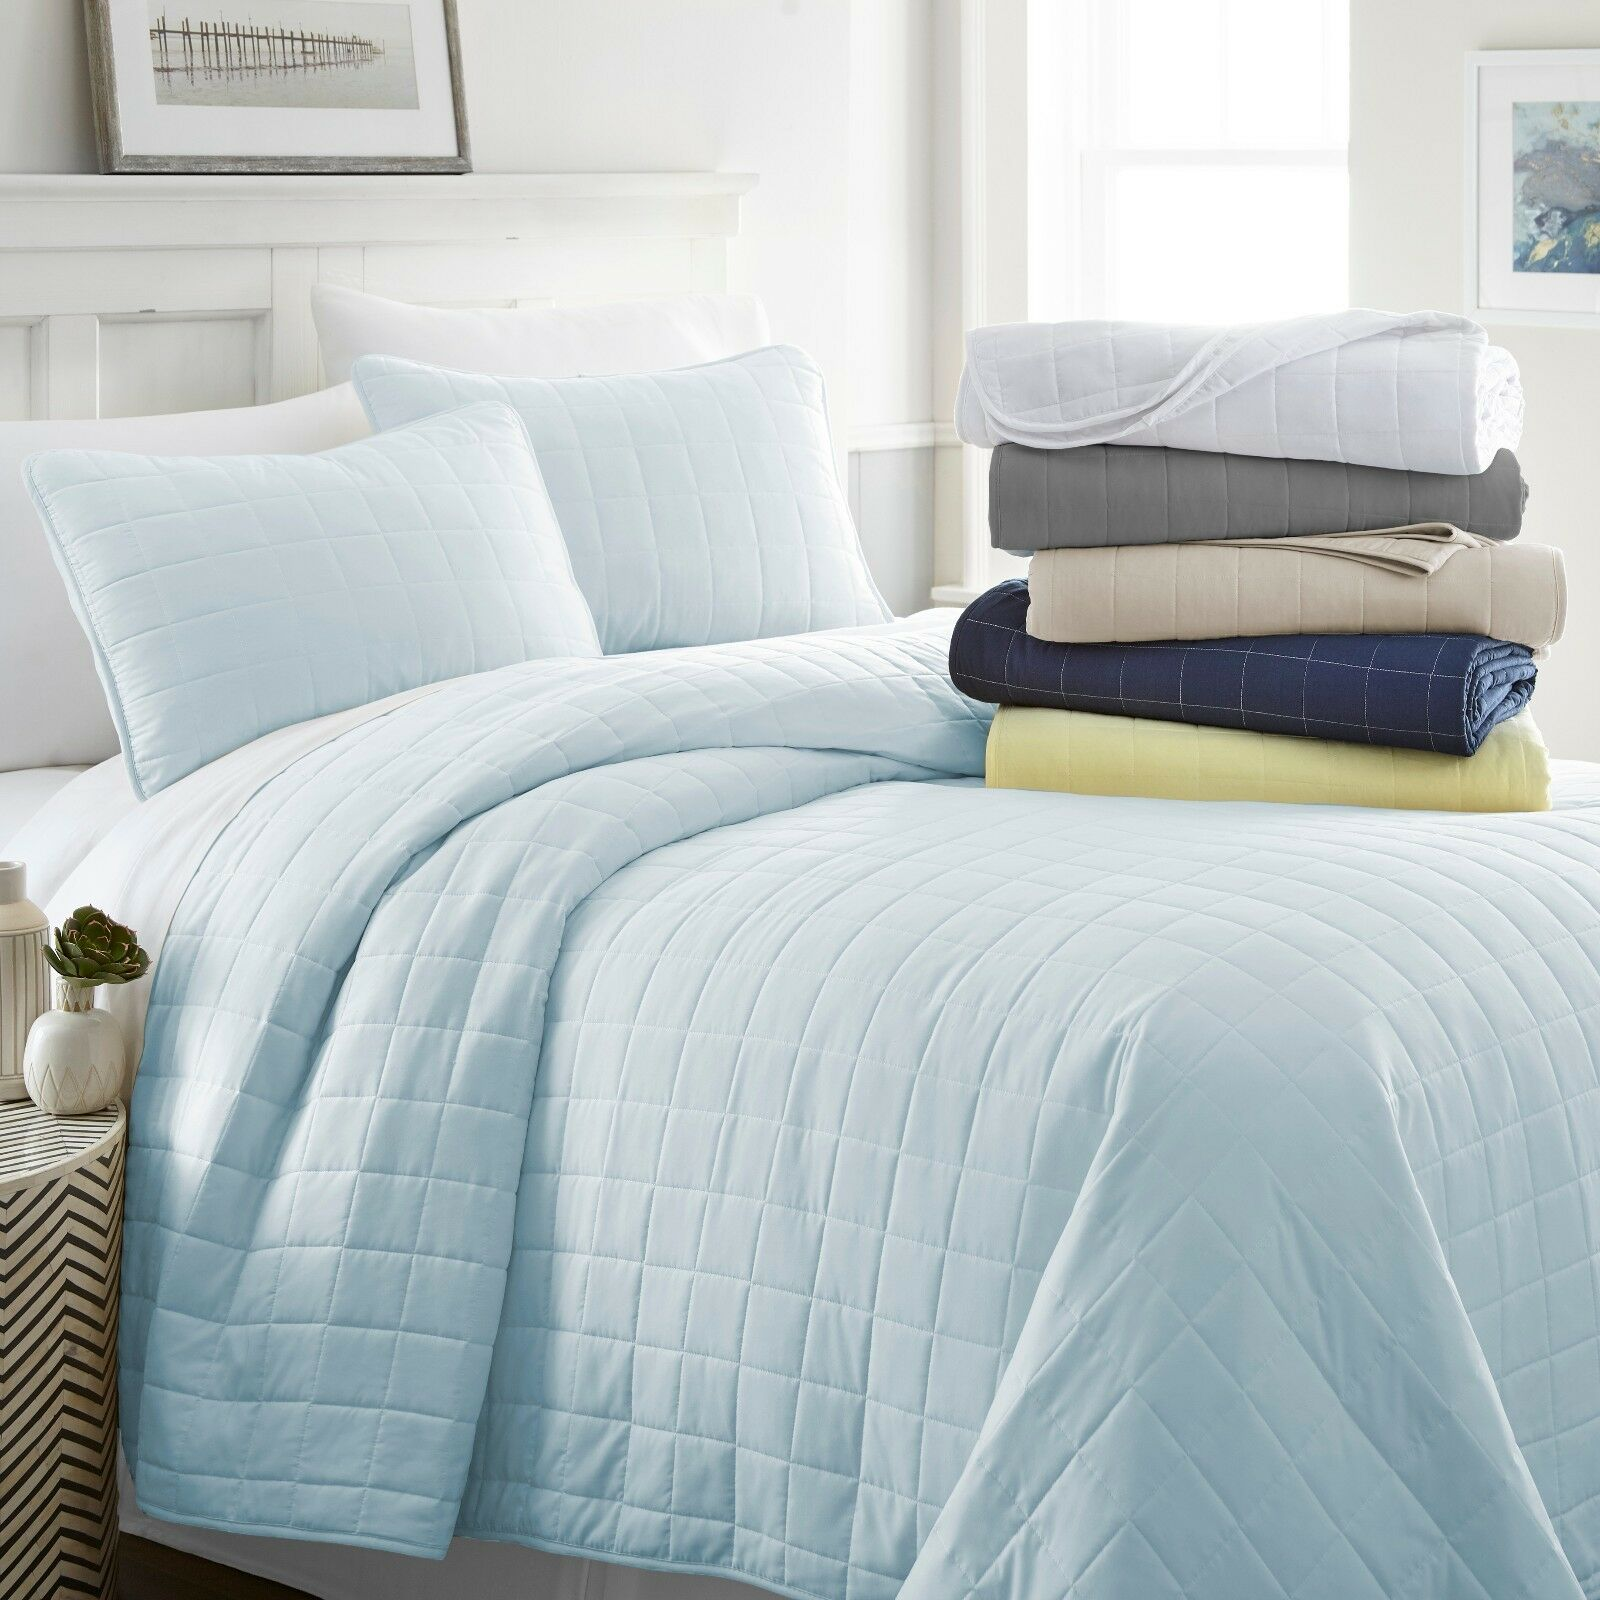 Linen Market Ultra Soft Hypoallergenic Quilted 3 Piece Cover